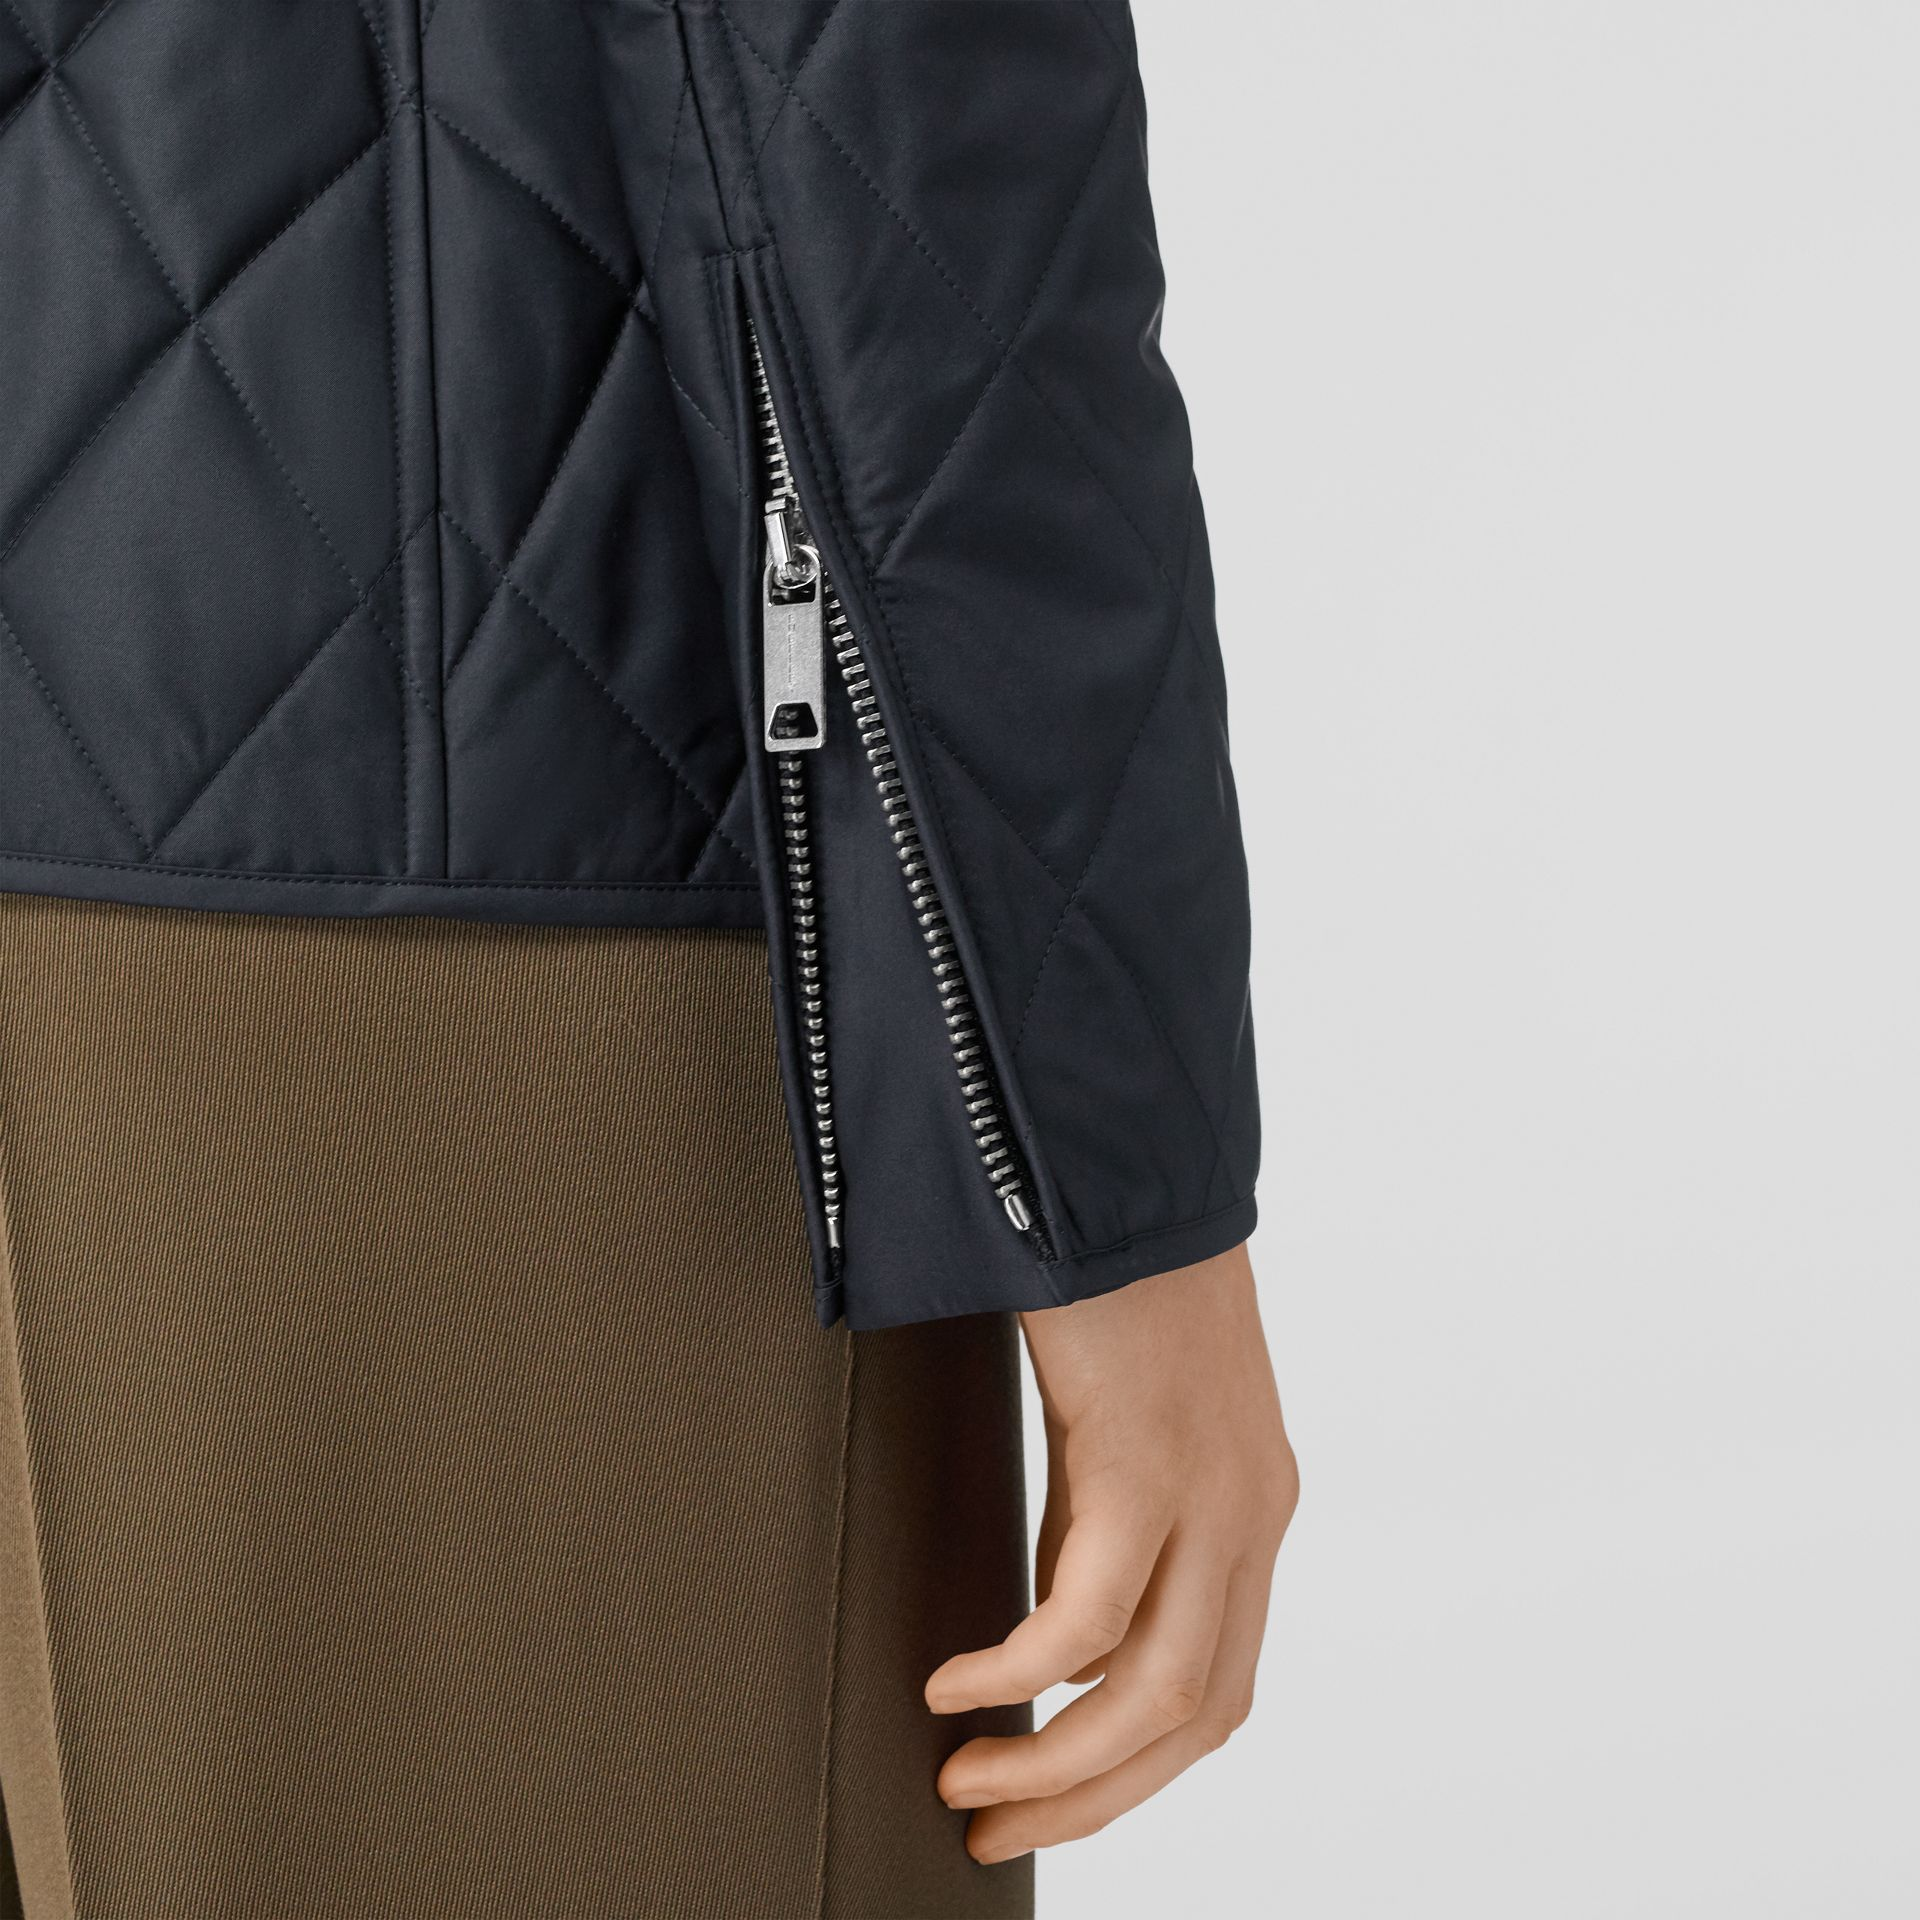 Monogram Motif Quilted Riding Jacket in Navy - Women | Burberry - gallery image 5